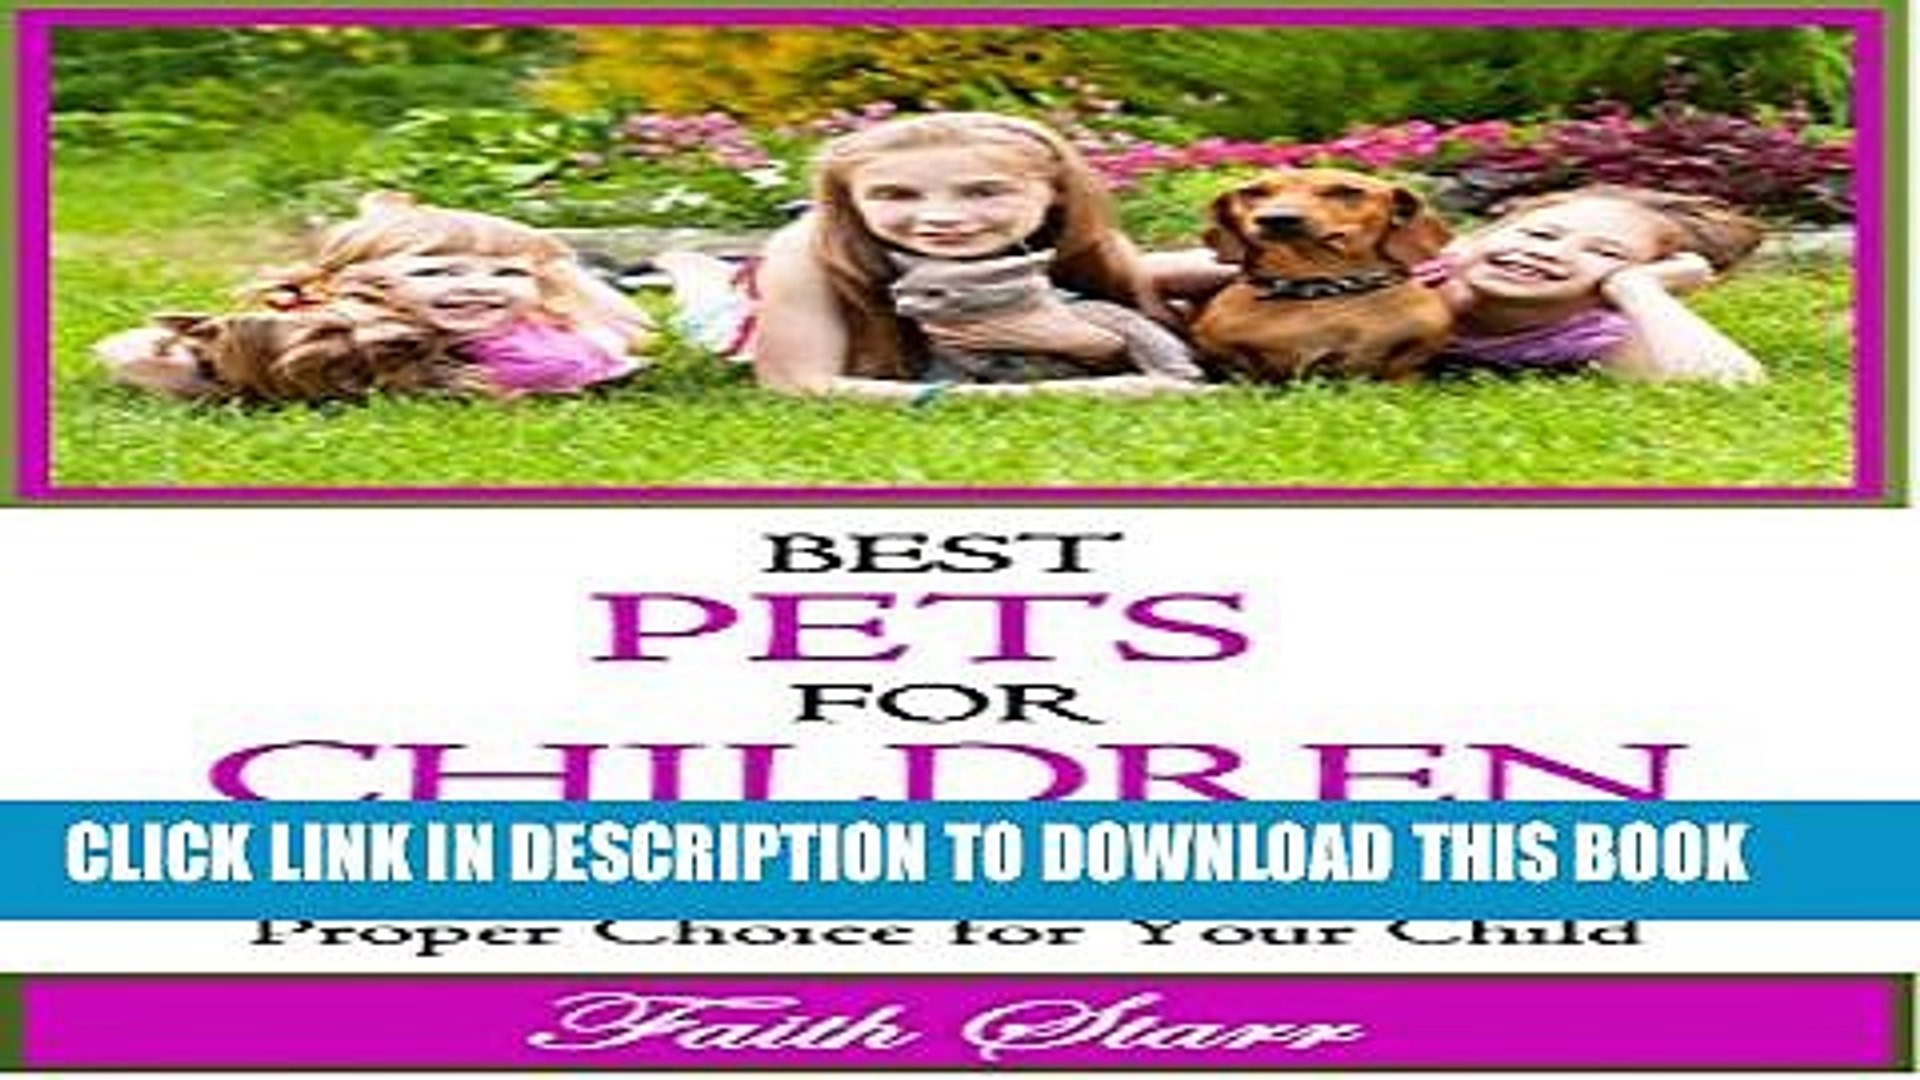 [PDF] Best Pets For Children: Ten Tips on Care and Proper Choice for Your Child (Caring for Pets,